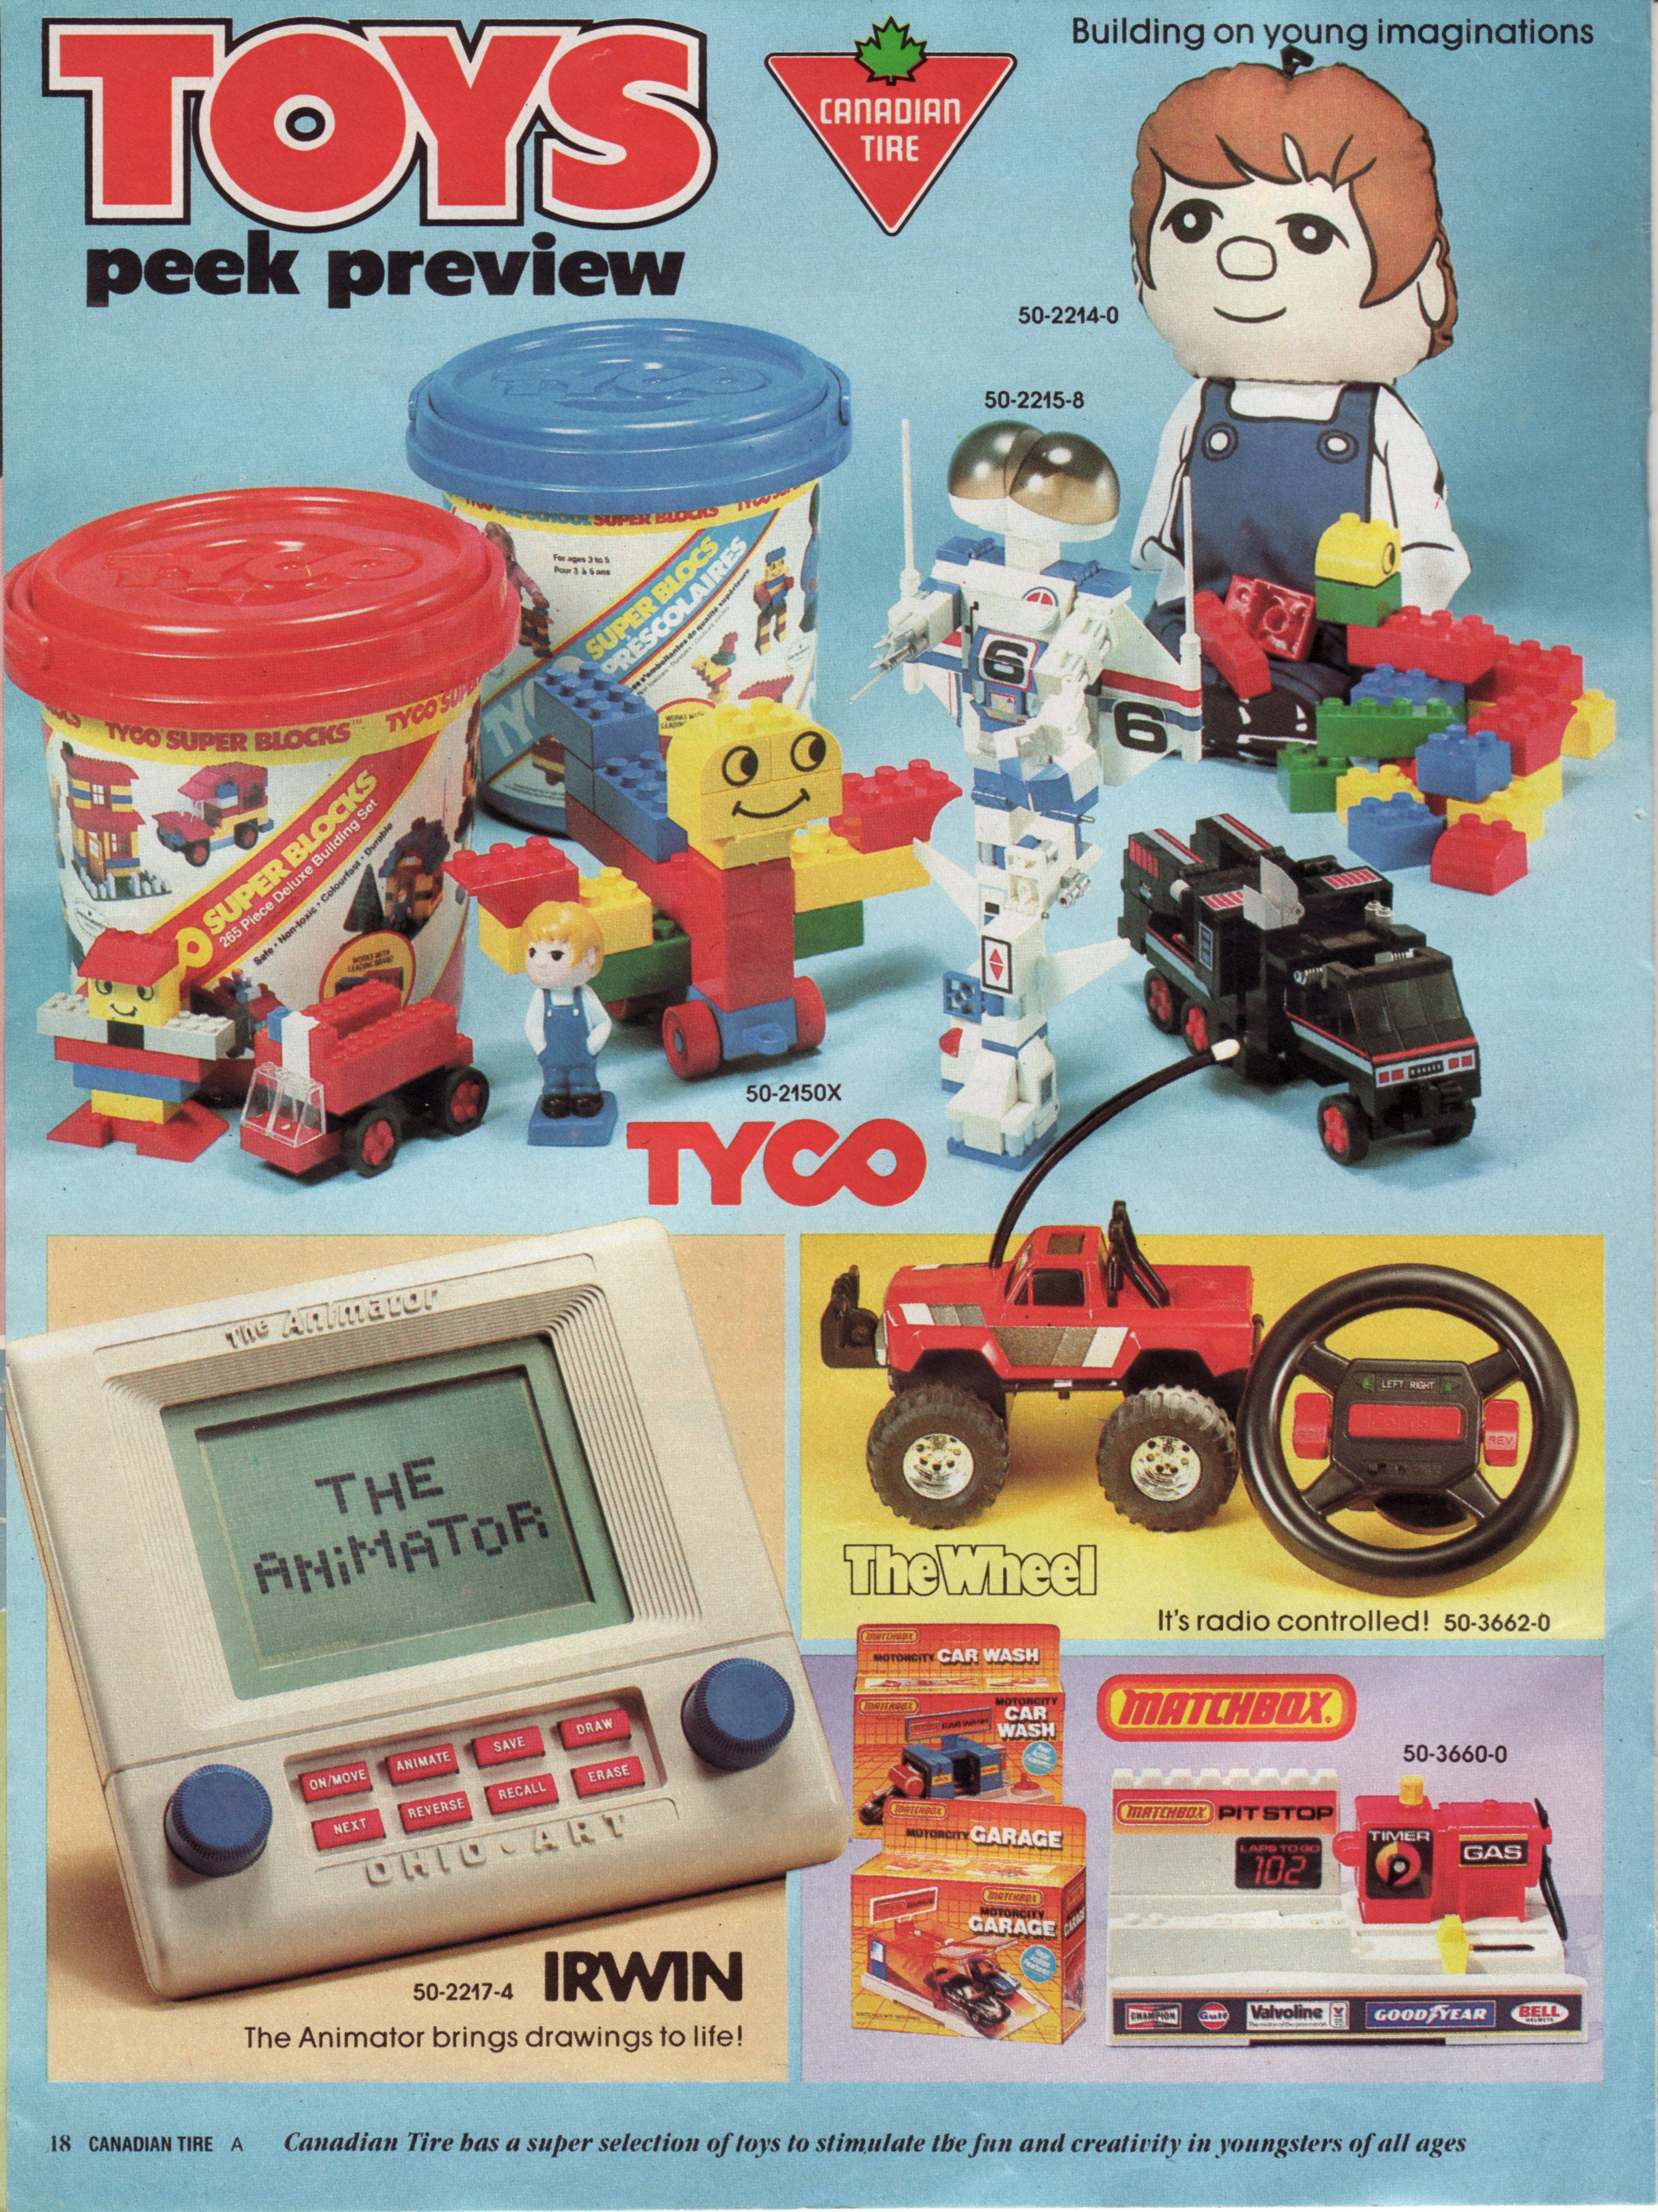 1986 Canadian Tire flyer mini catalogue catalog Toys peek preview